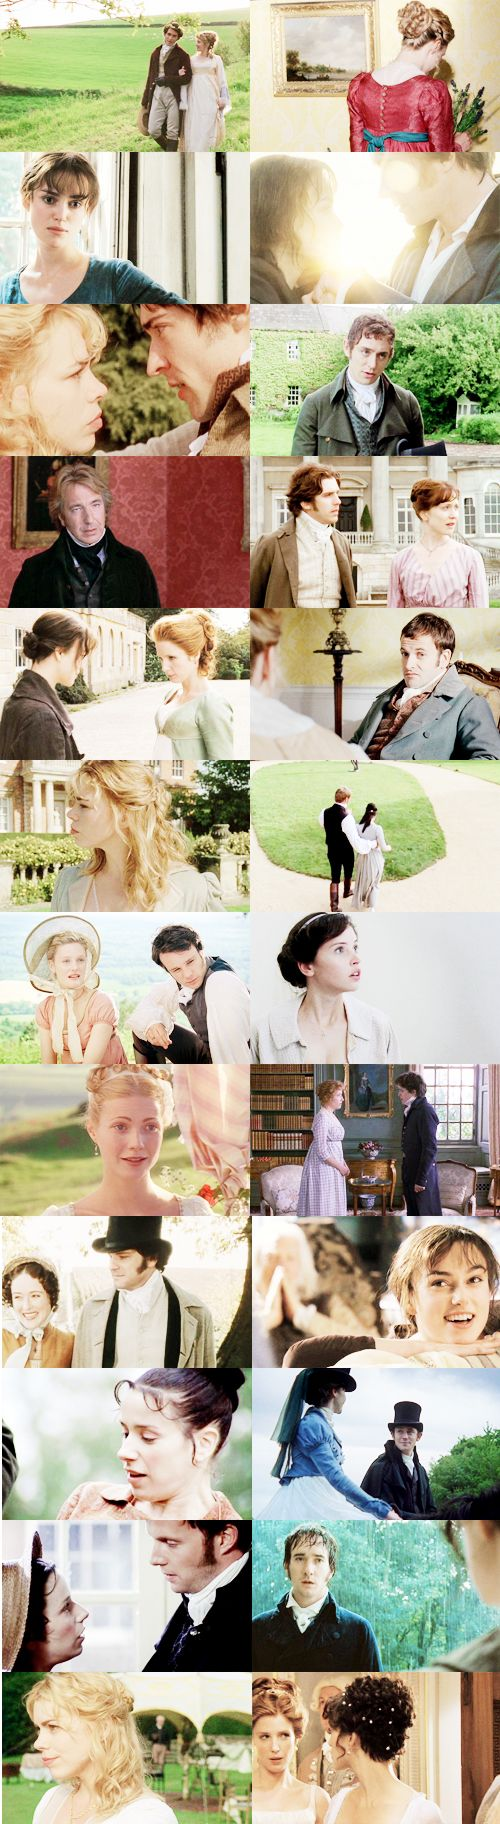 Jane Austen film adaptations. LOVE THIS. Well that just about sums it all up! <<< it's missing my favorite adaptation of persuasion but it'll do.